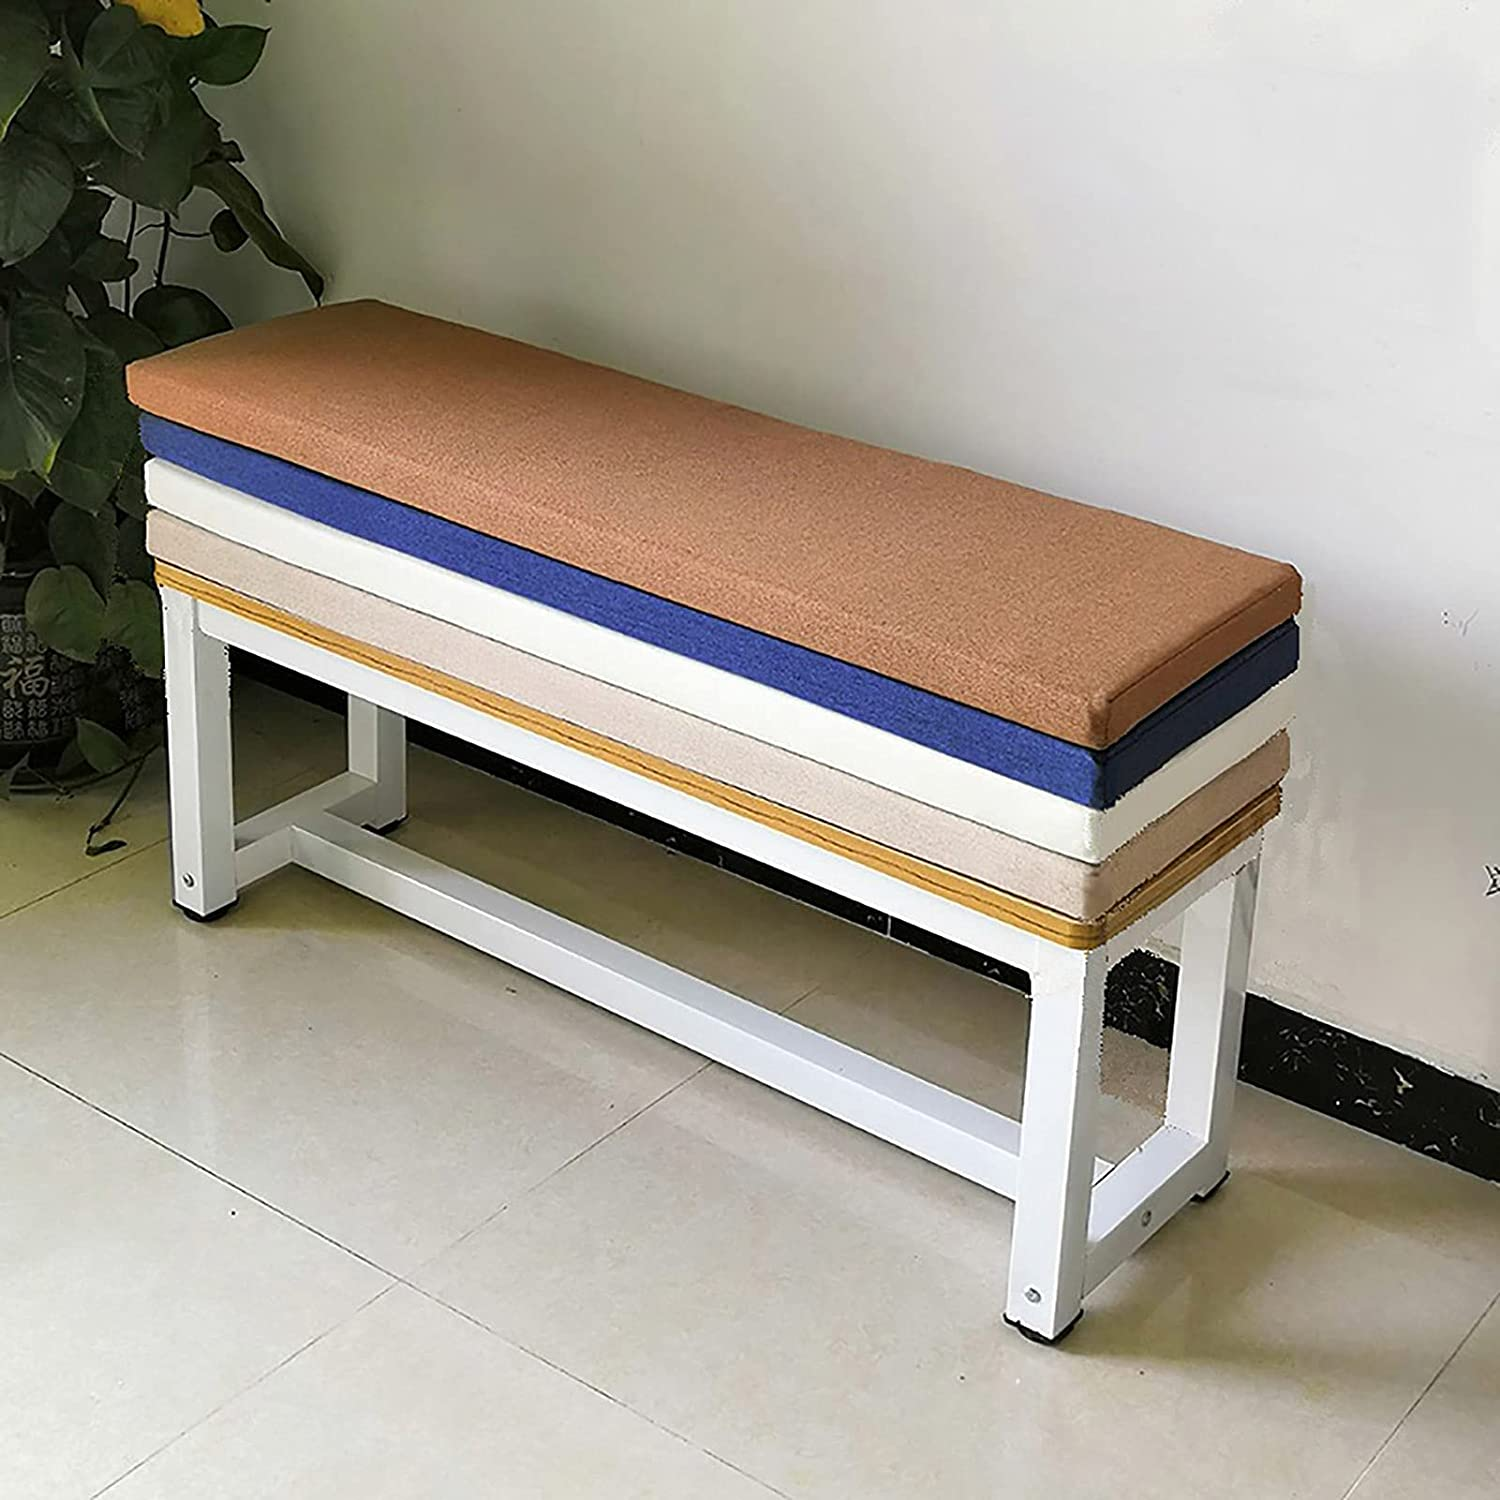 Popular overseas ADSEA Indoor Thicken Bench Multicolored Removable Cushion High order Patio